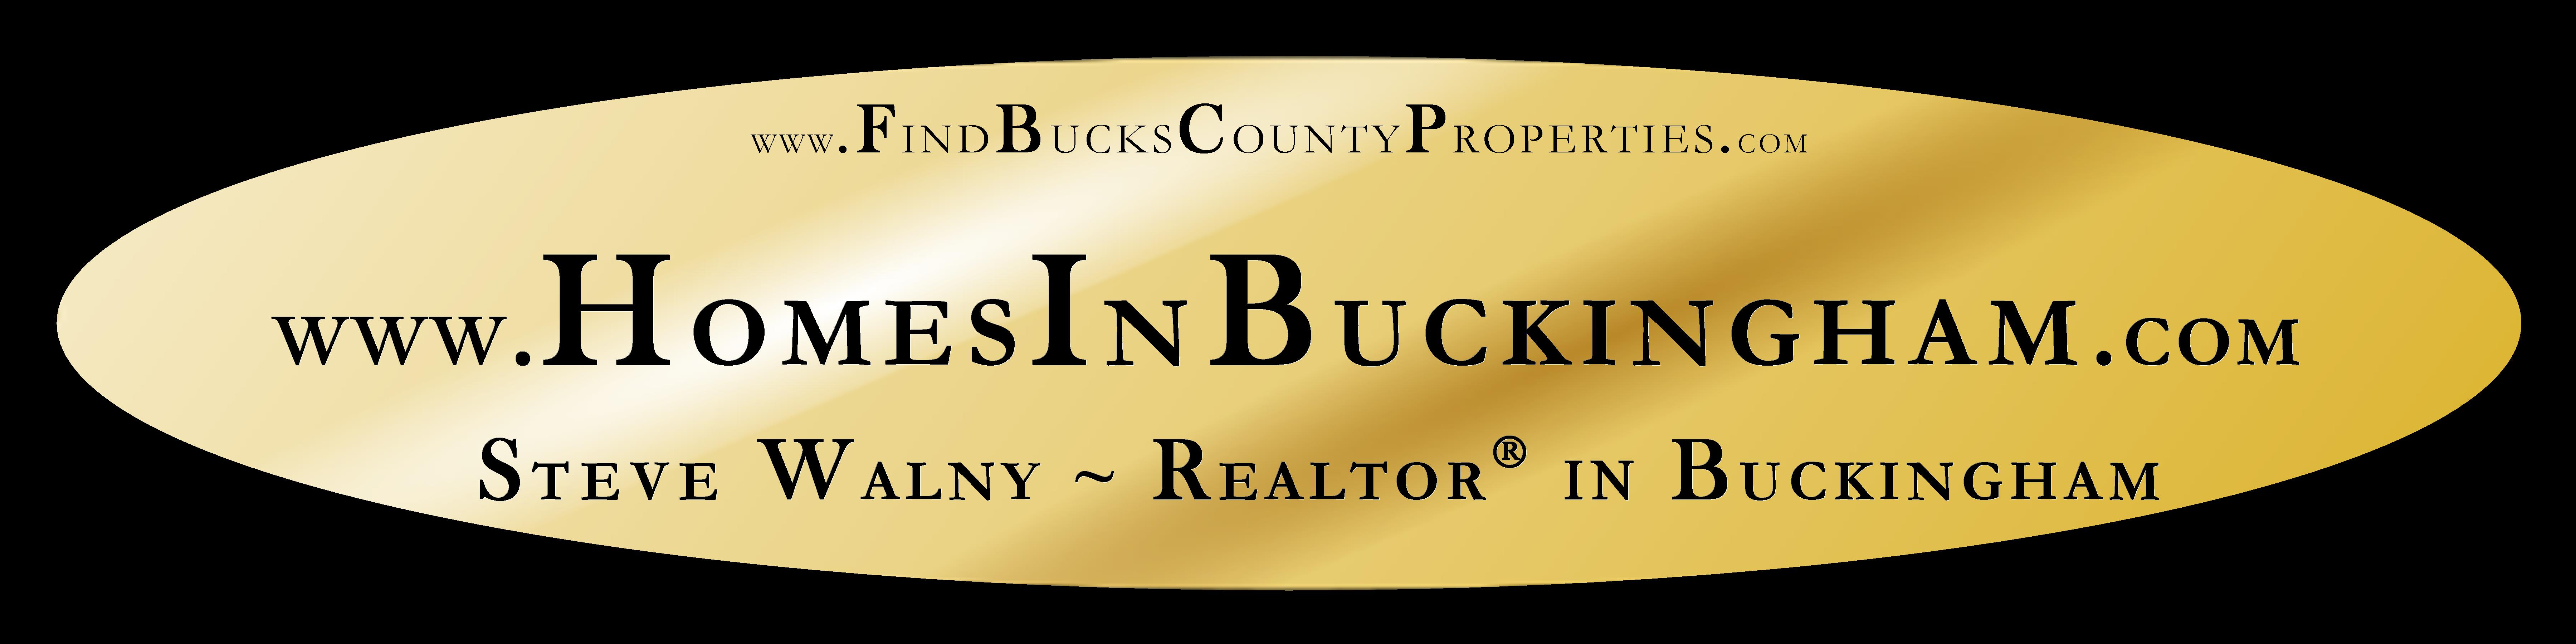 Homes in Buckingham PA for Sale, www.HomesInBuckingham.com, #HomesInBuckingham, Steve Walny, Buckingham PA REALTOR, #SteveWalny, #BuckinghamPAREALTOR, #CentralBucksSchoolDistrict